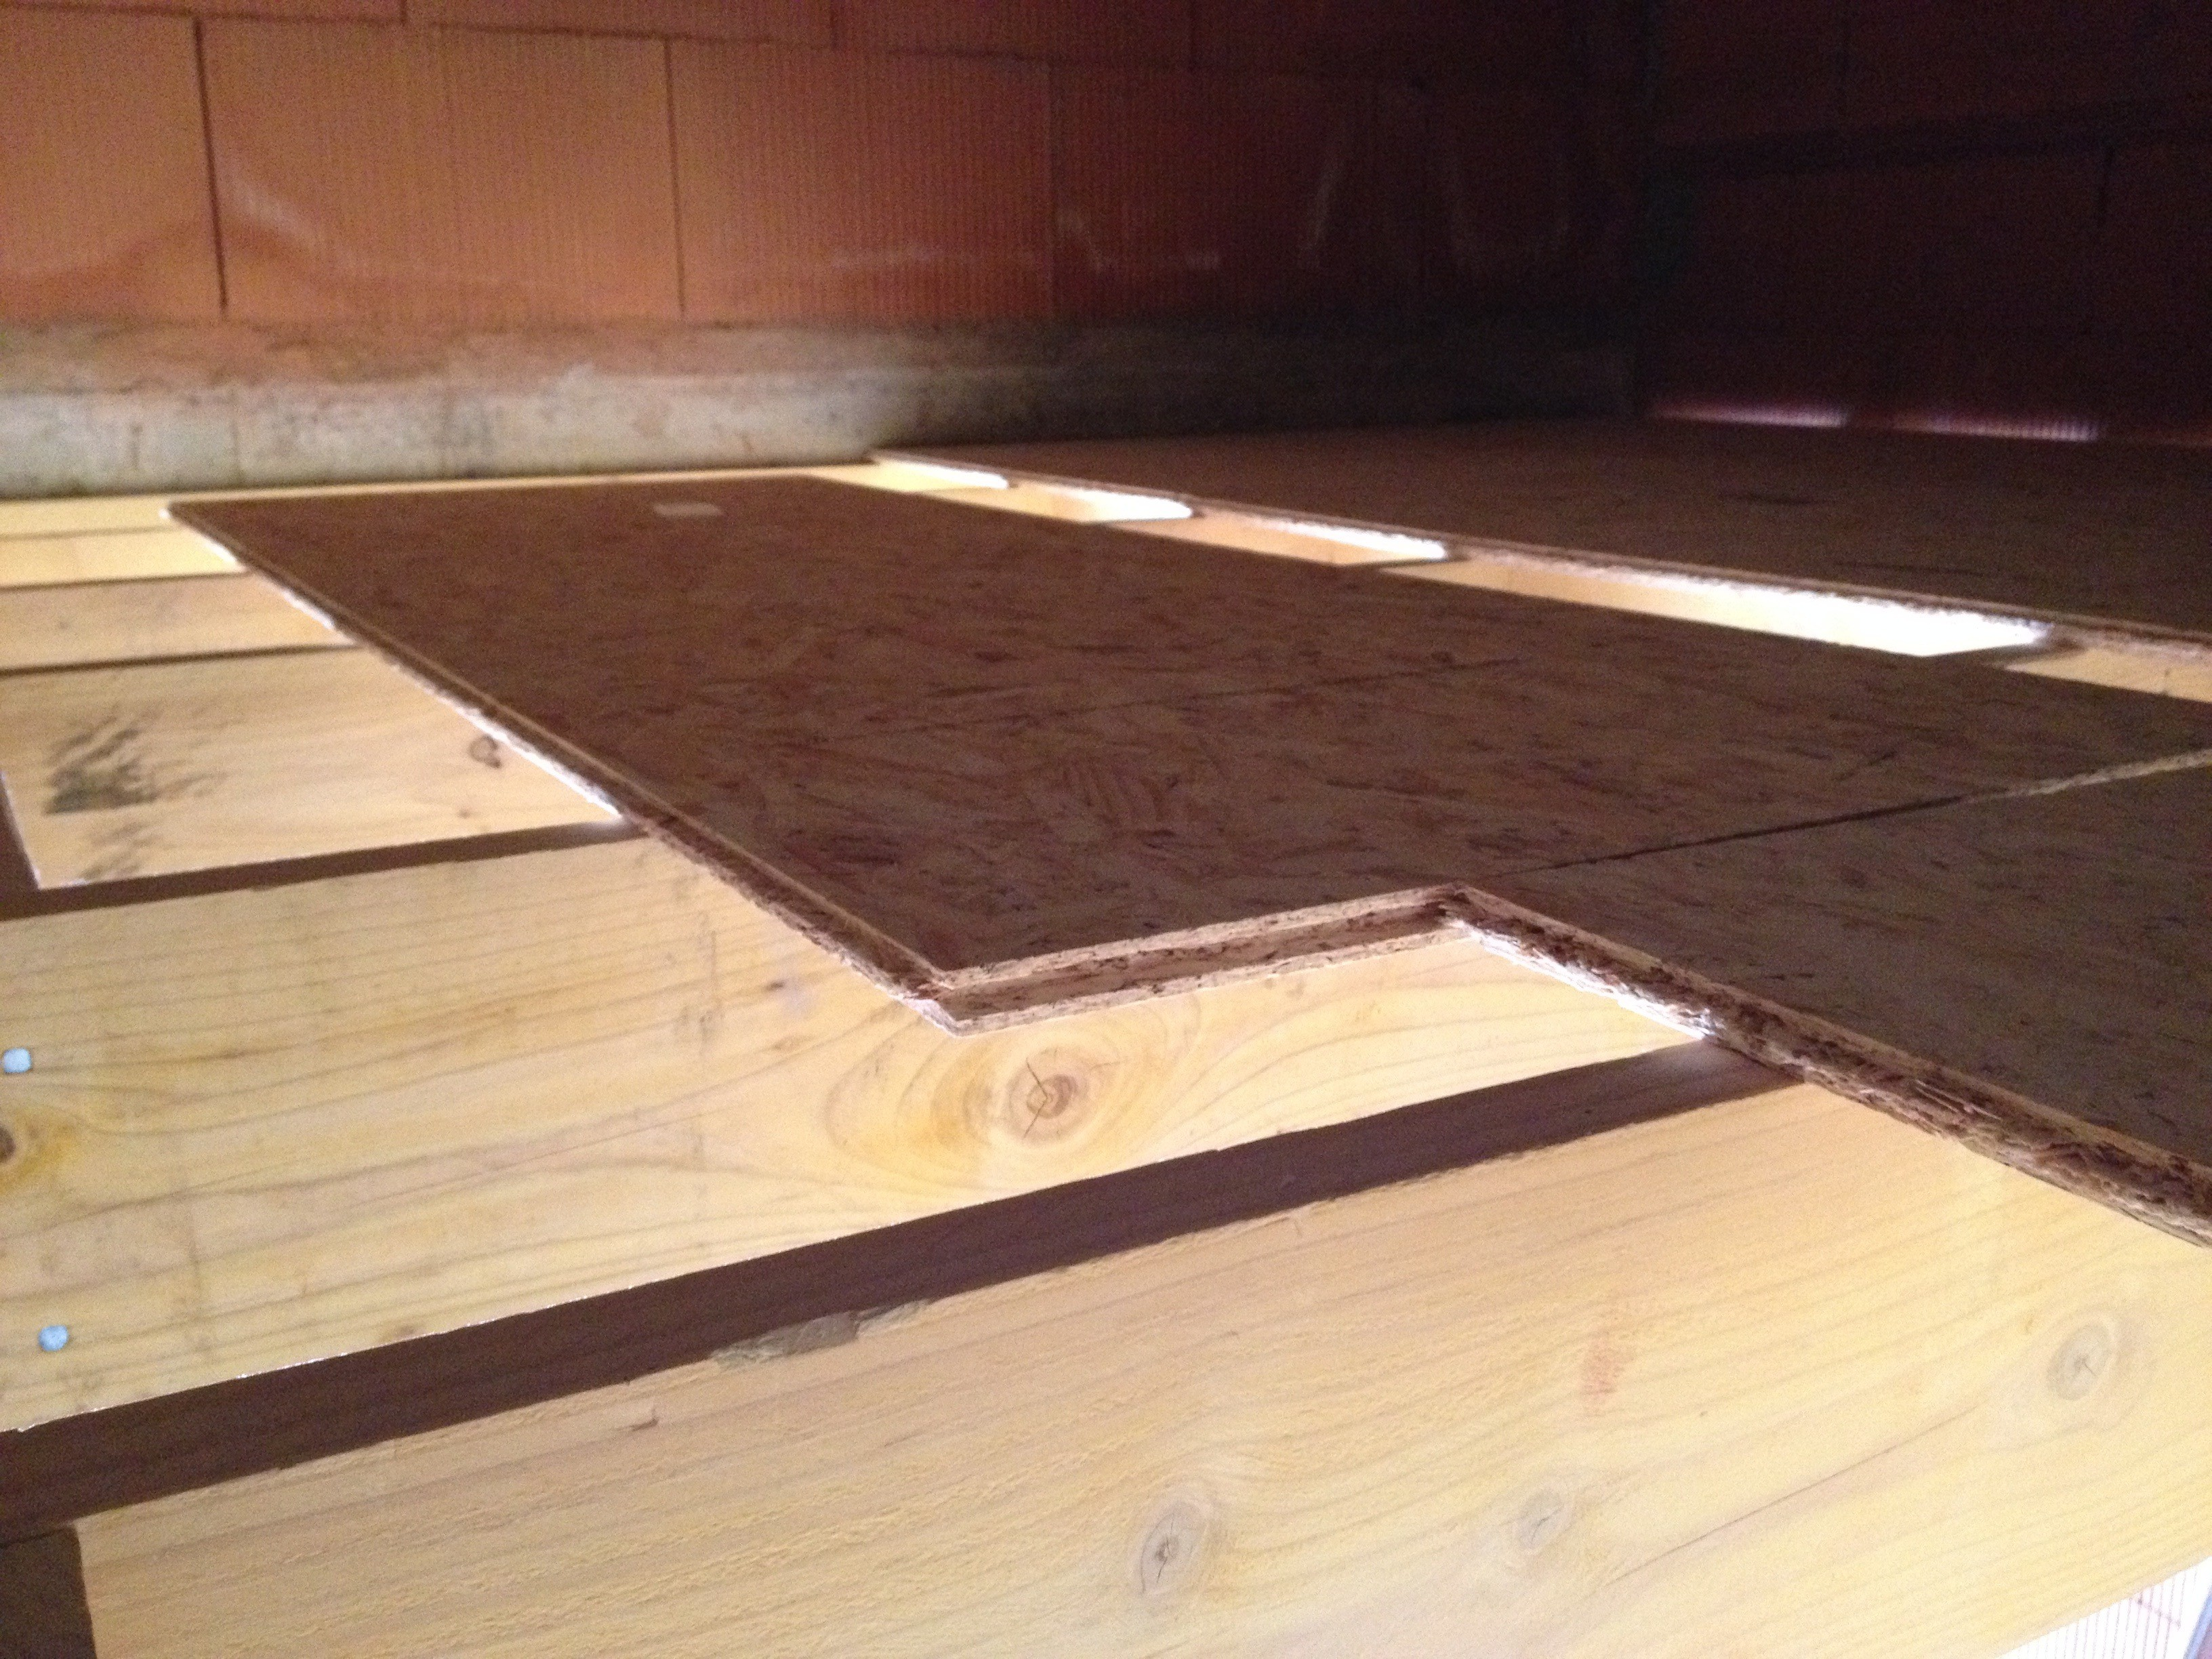 Carrelage sur plancher osb 28 images in the wood for for Pose carrelage sur osb